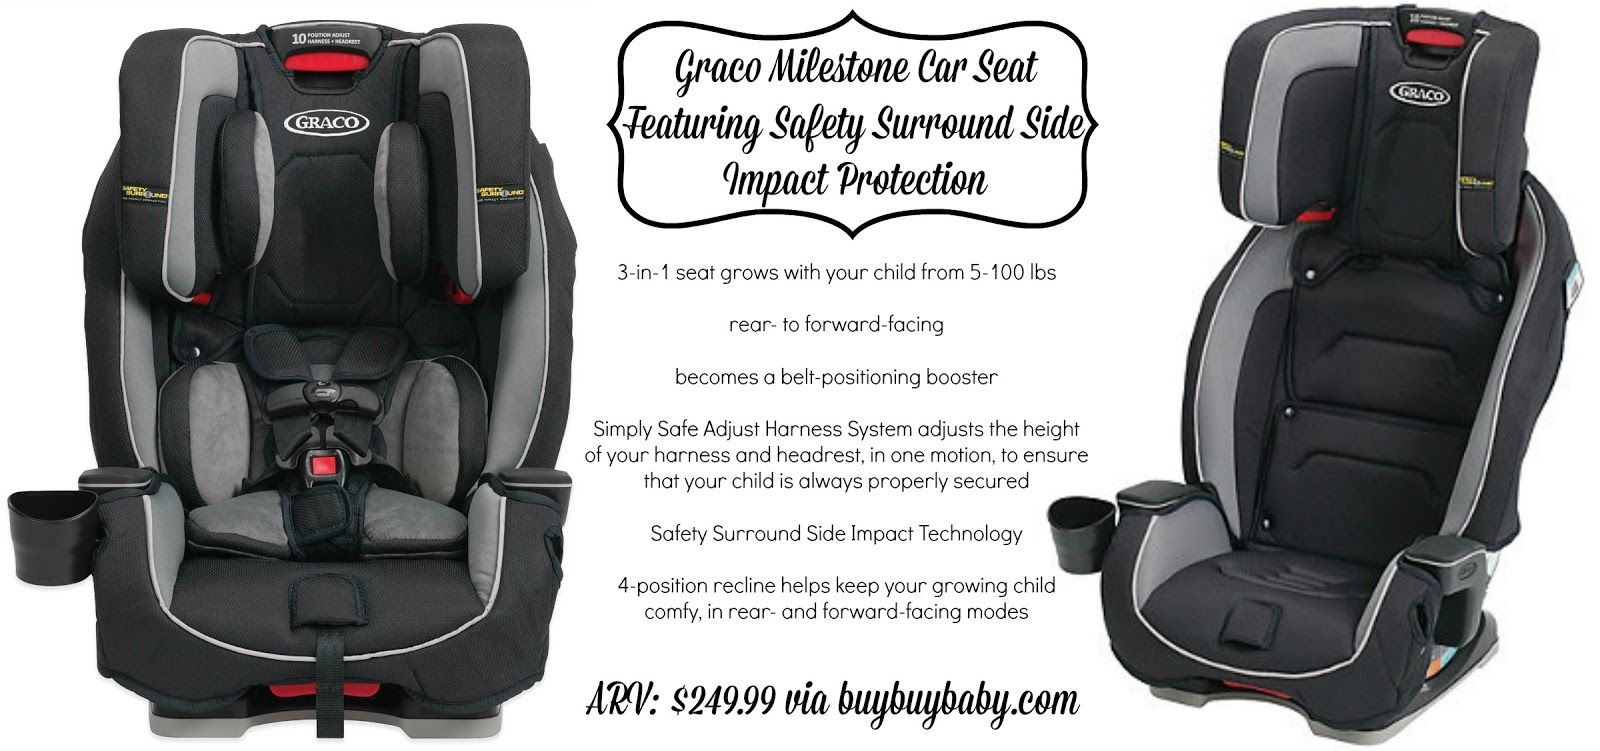 Gracos Milestone All In 1 Car Seat Review